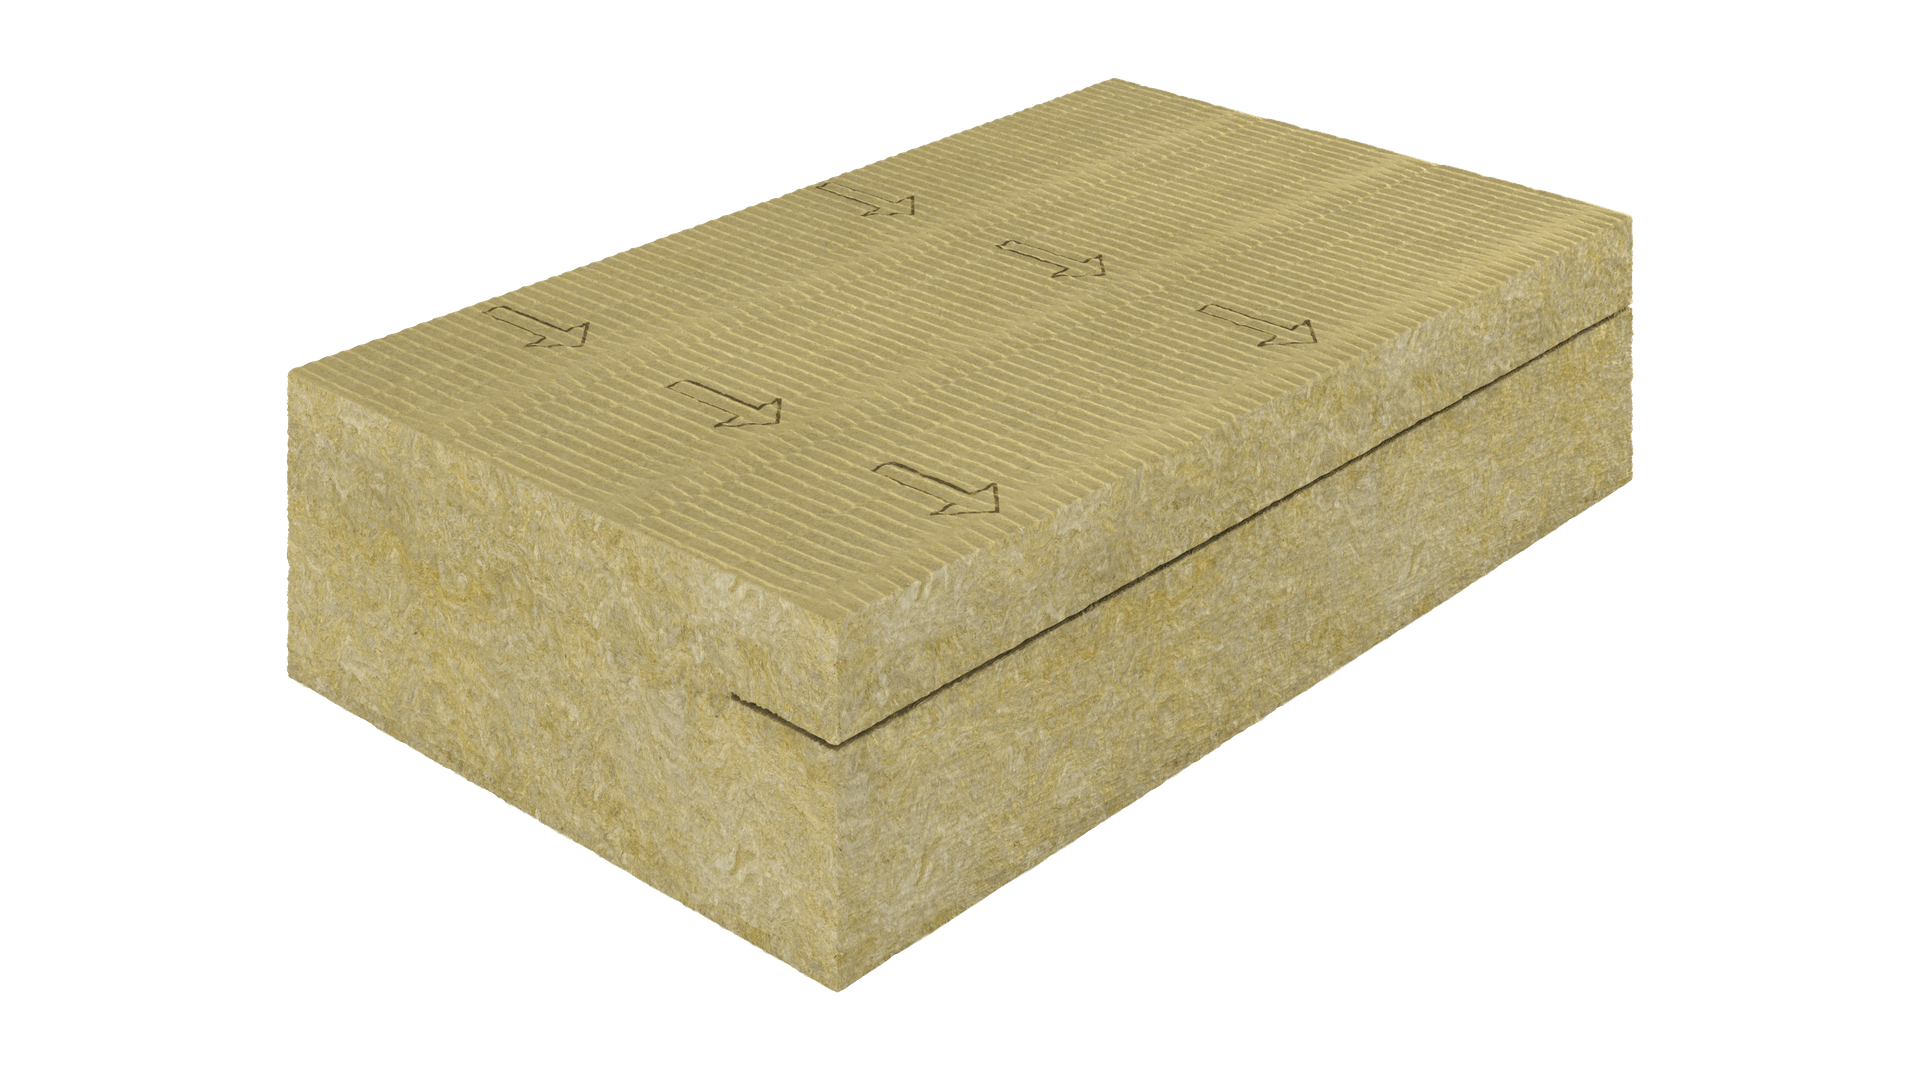 product, product page, germany, fri, plate, steelrock 035 plus ü40